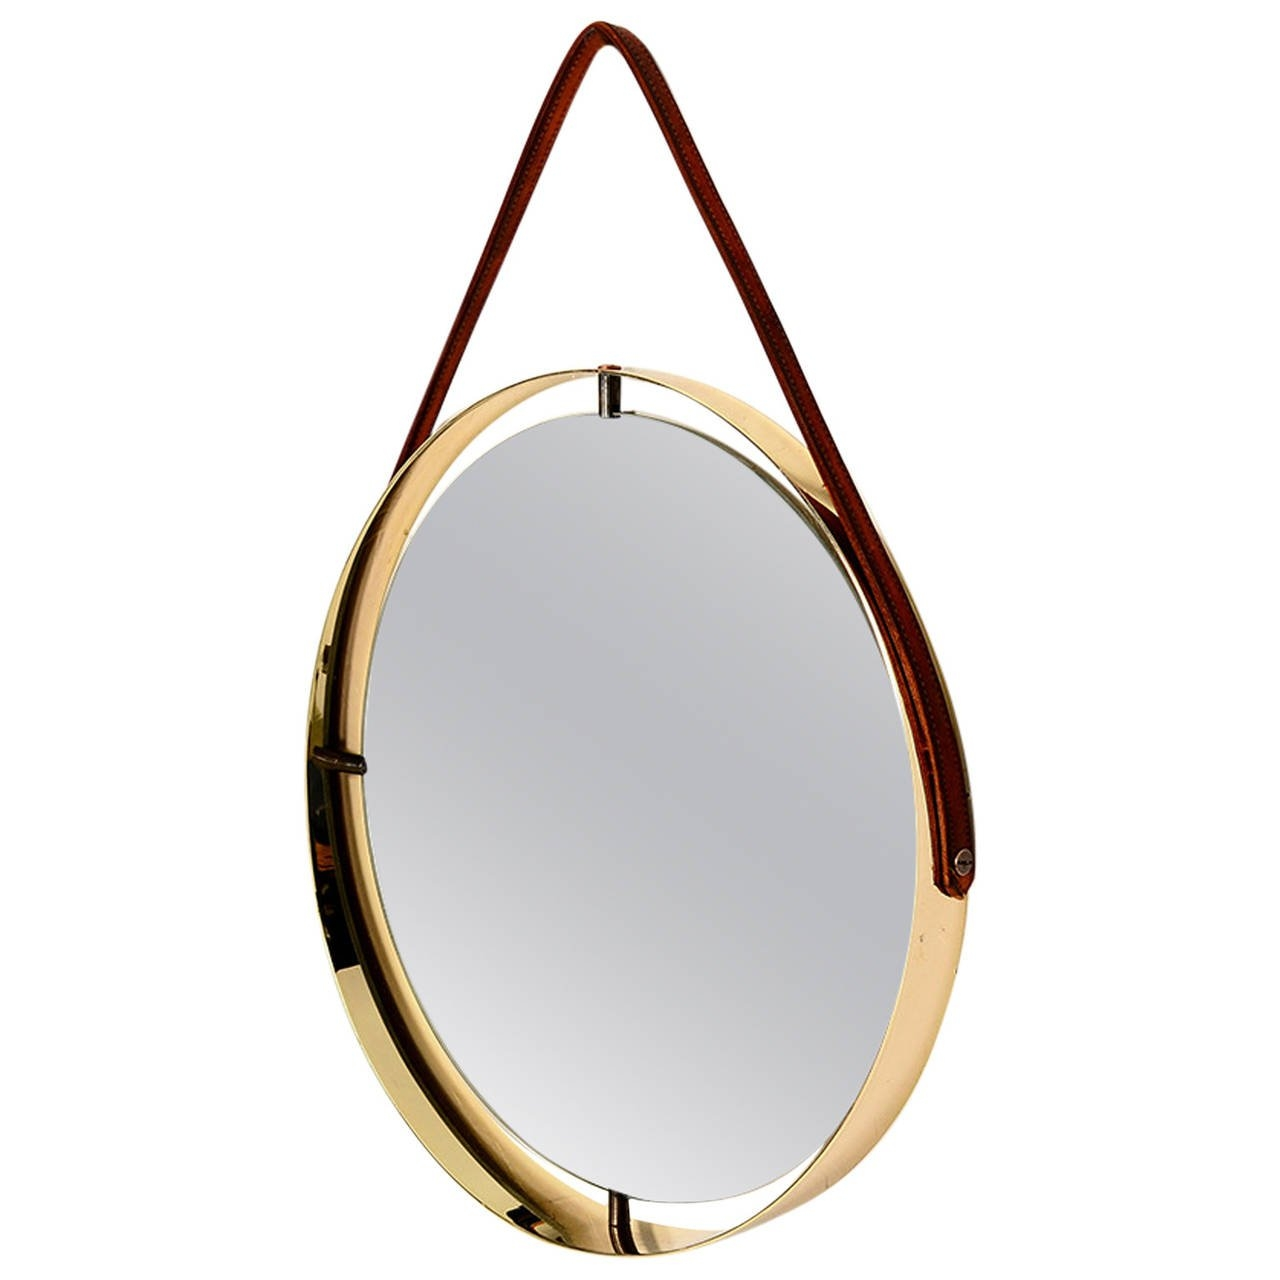 Round Mirror With Leather Strap For Sale At 1stdibs Throughout Round Leather Mirror (Image 10 of 15)